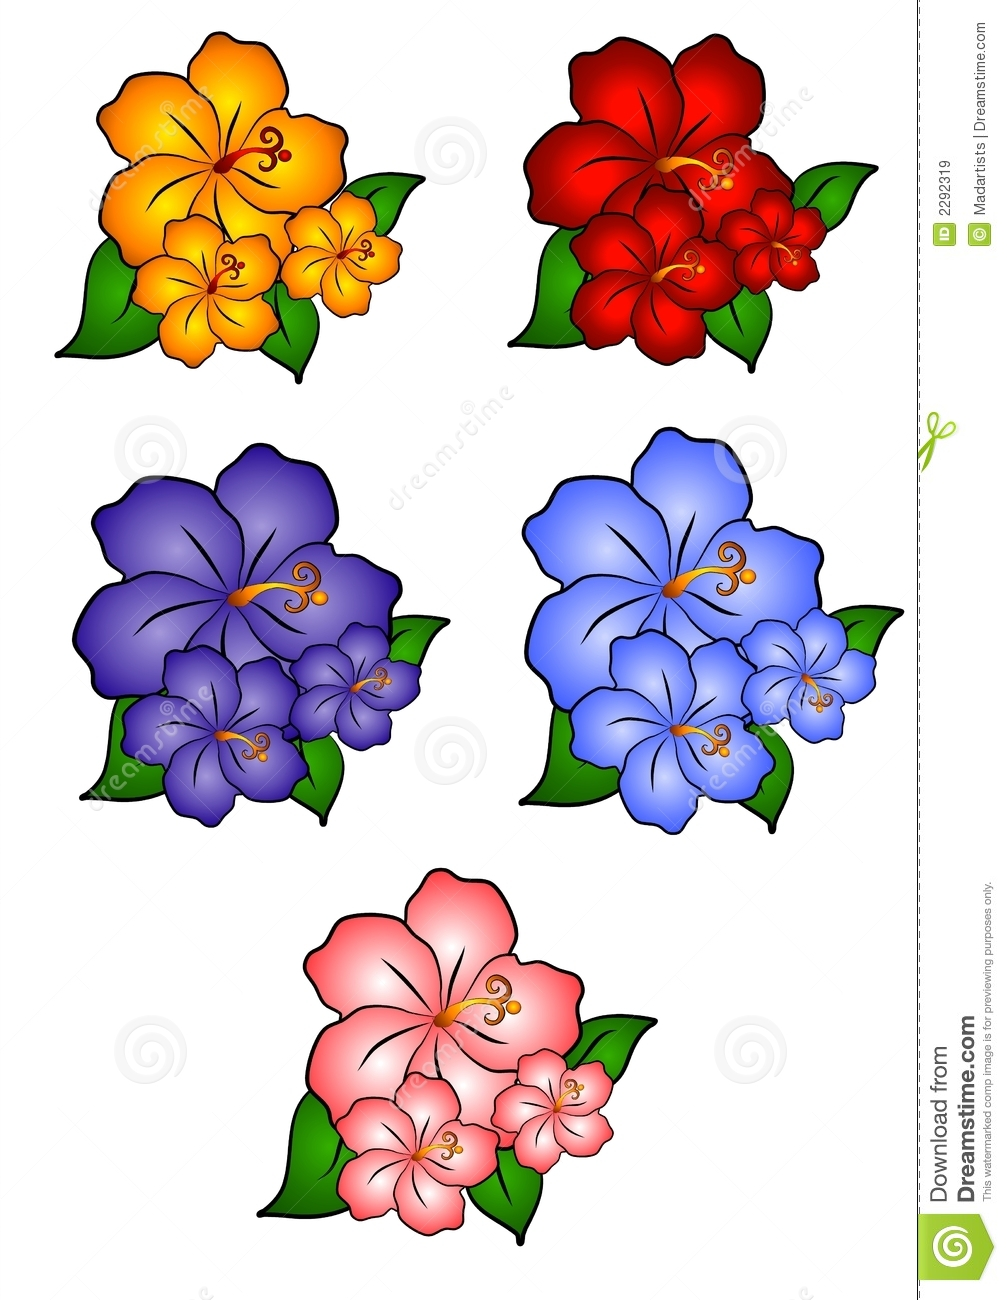 hight resolution of fruit border clipart